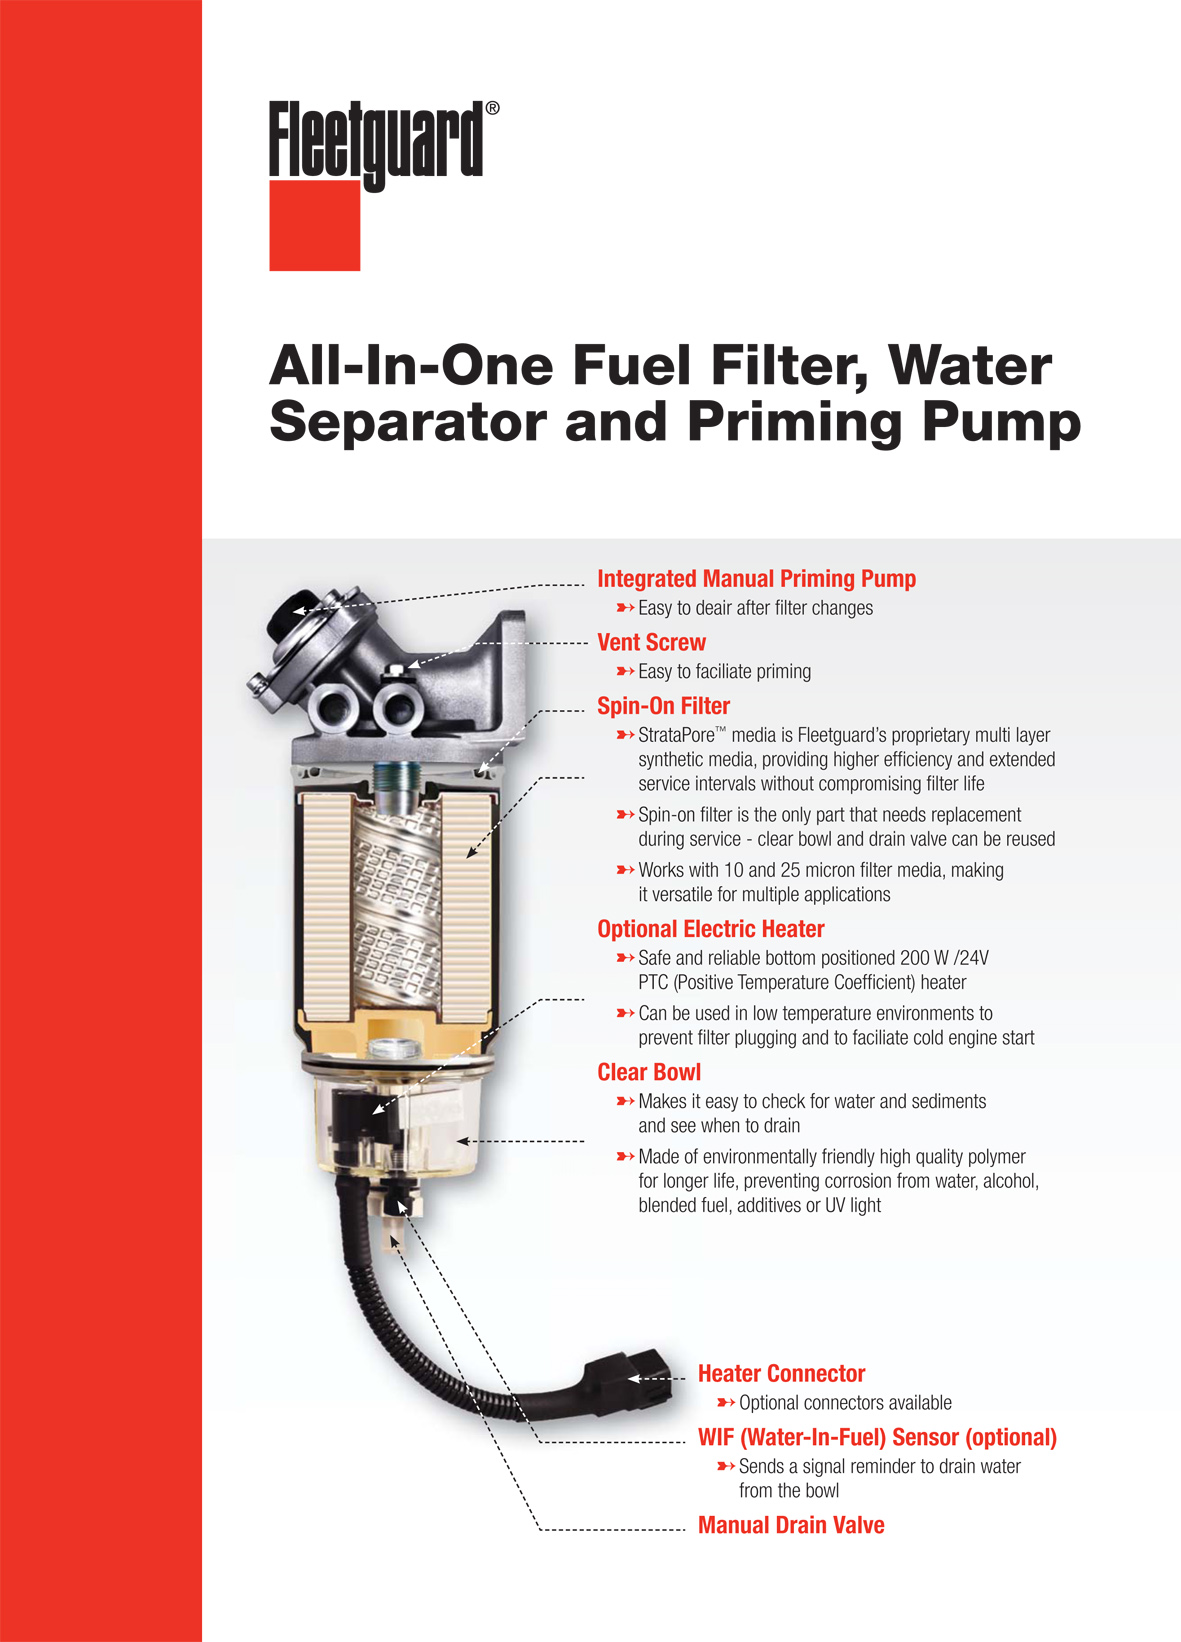 All-In-One Fuel Filter, Water Separator, and Priming Pump | Cummins